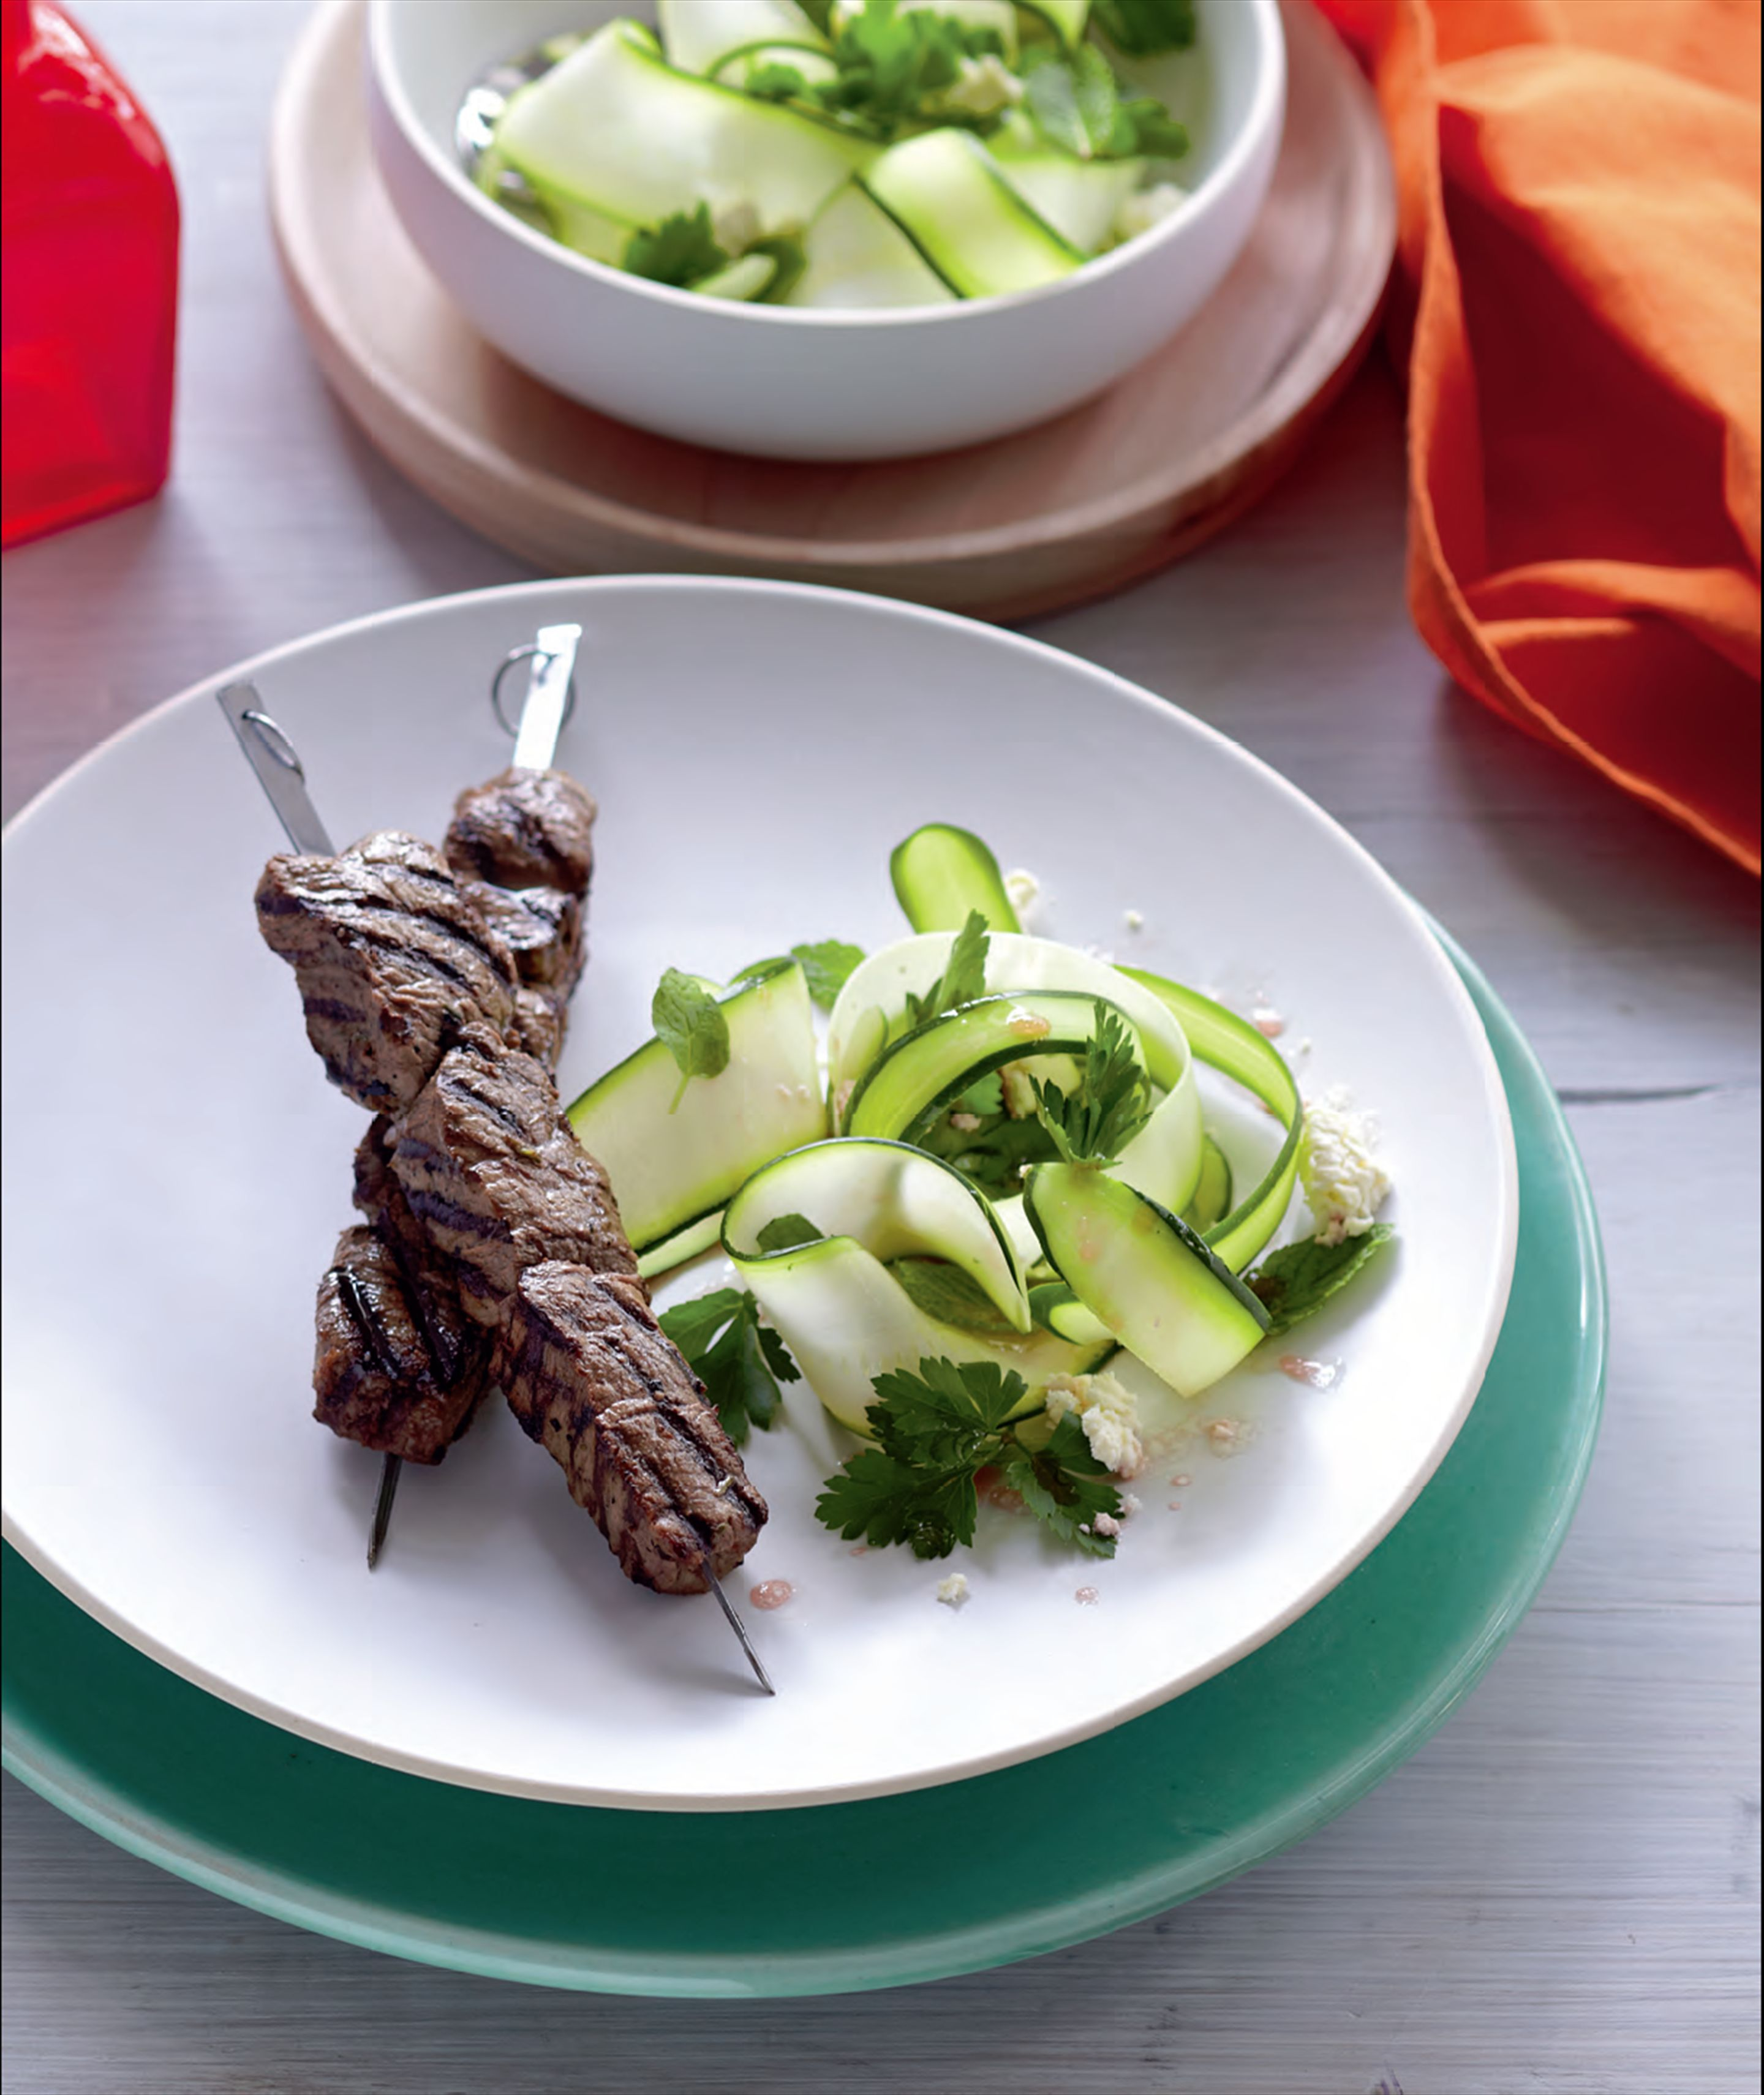 Beef skewers with zucchini salad